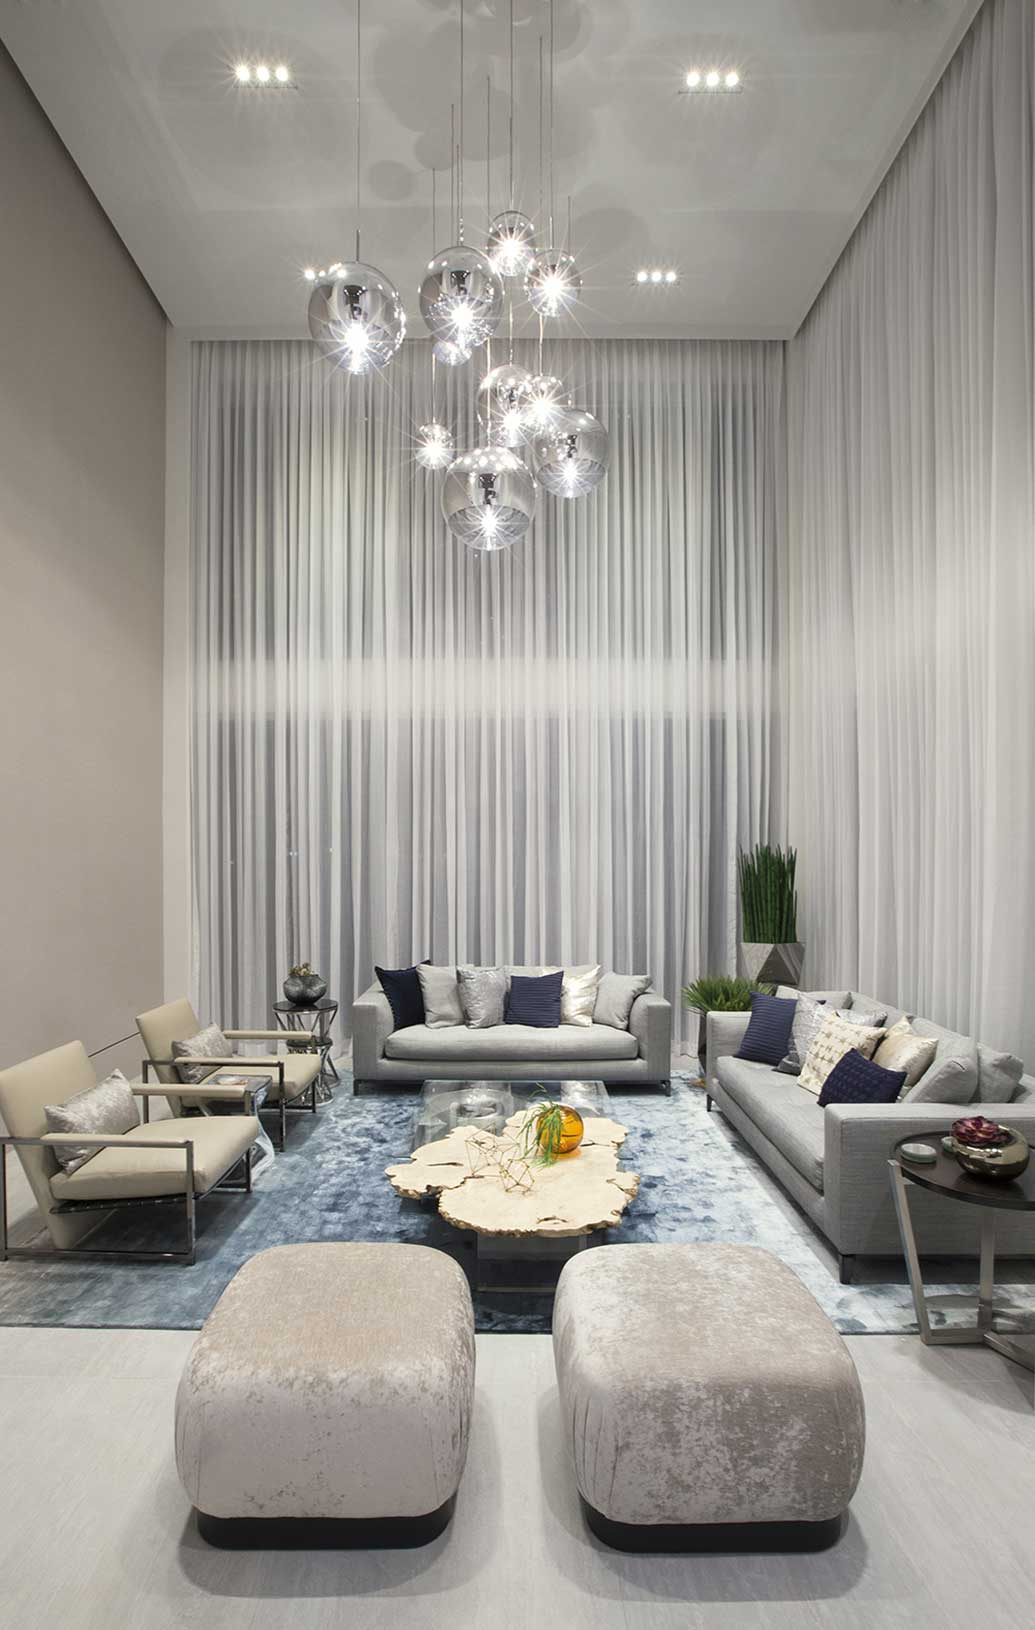 Miami contemporary home by DKOR Interiors